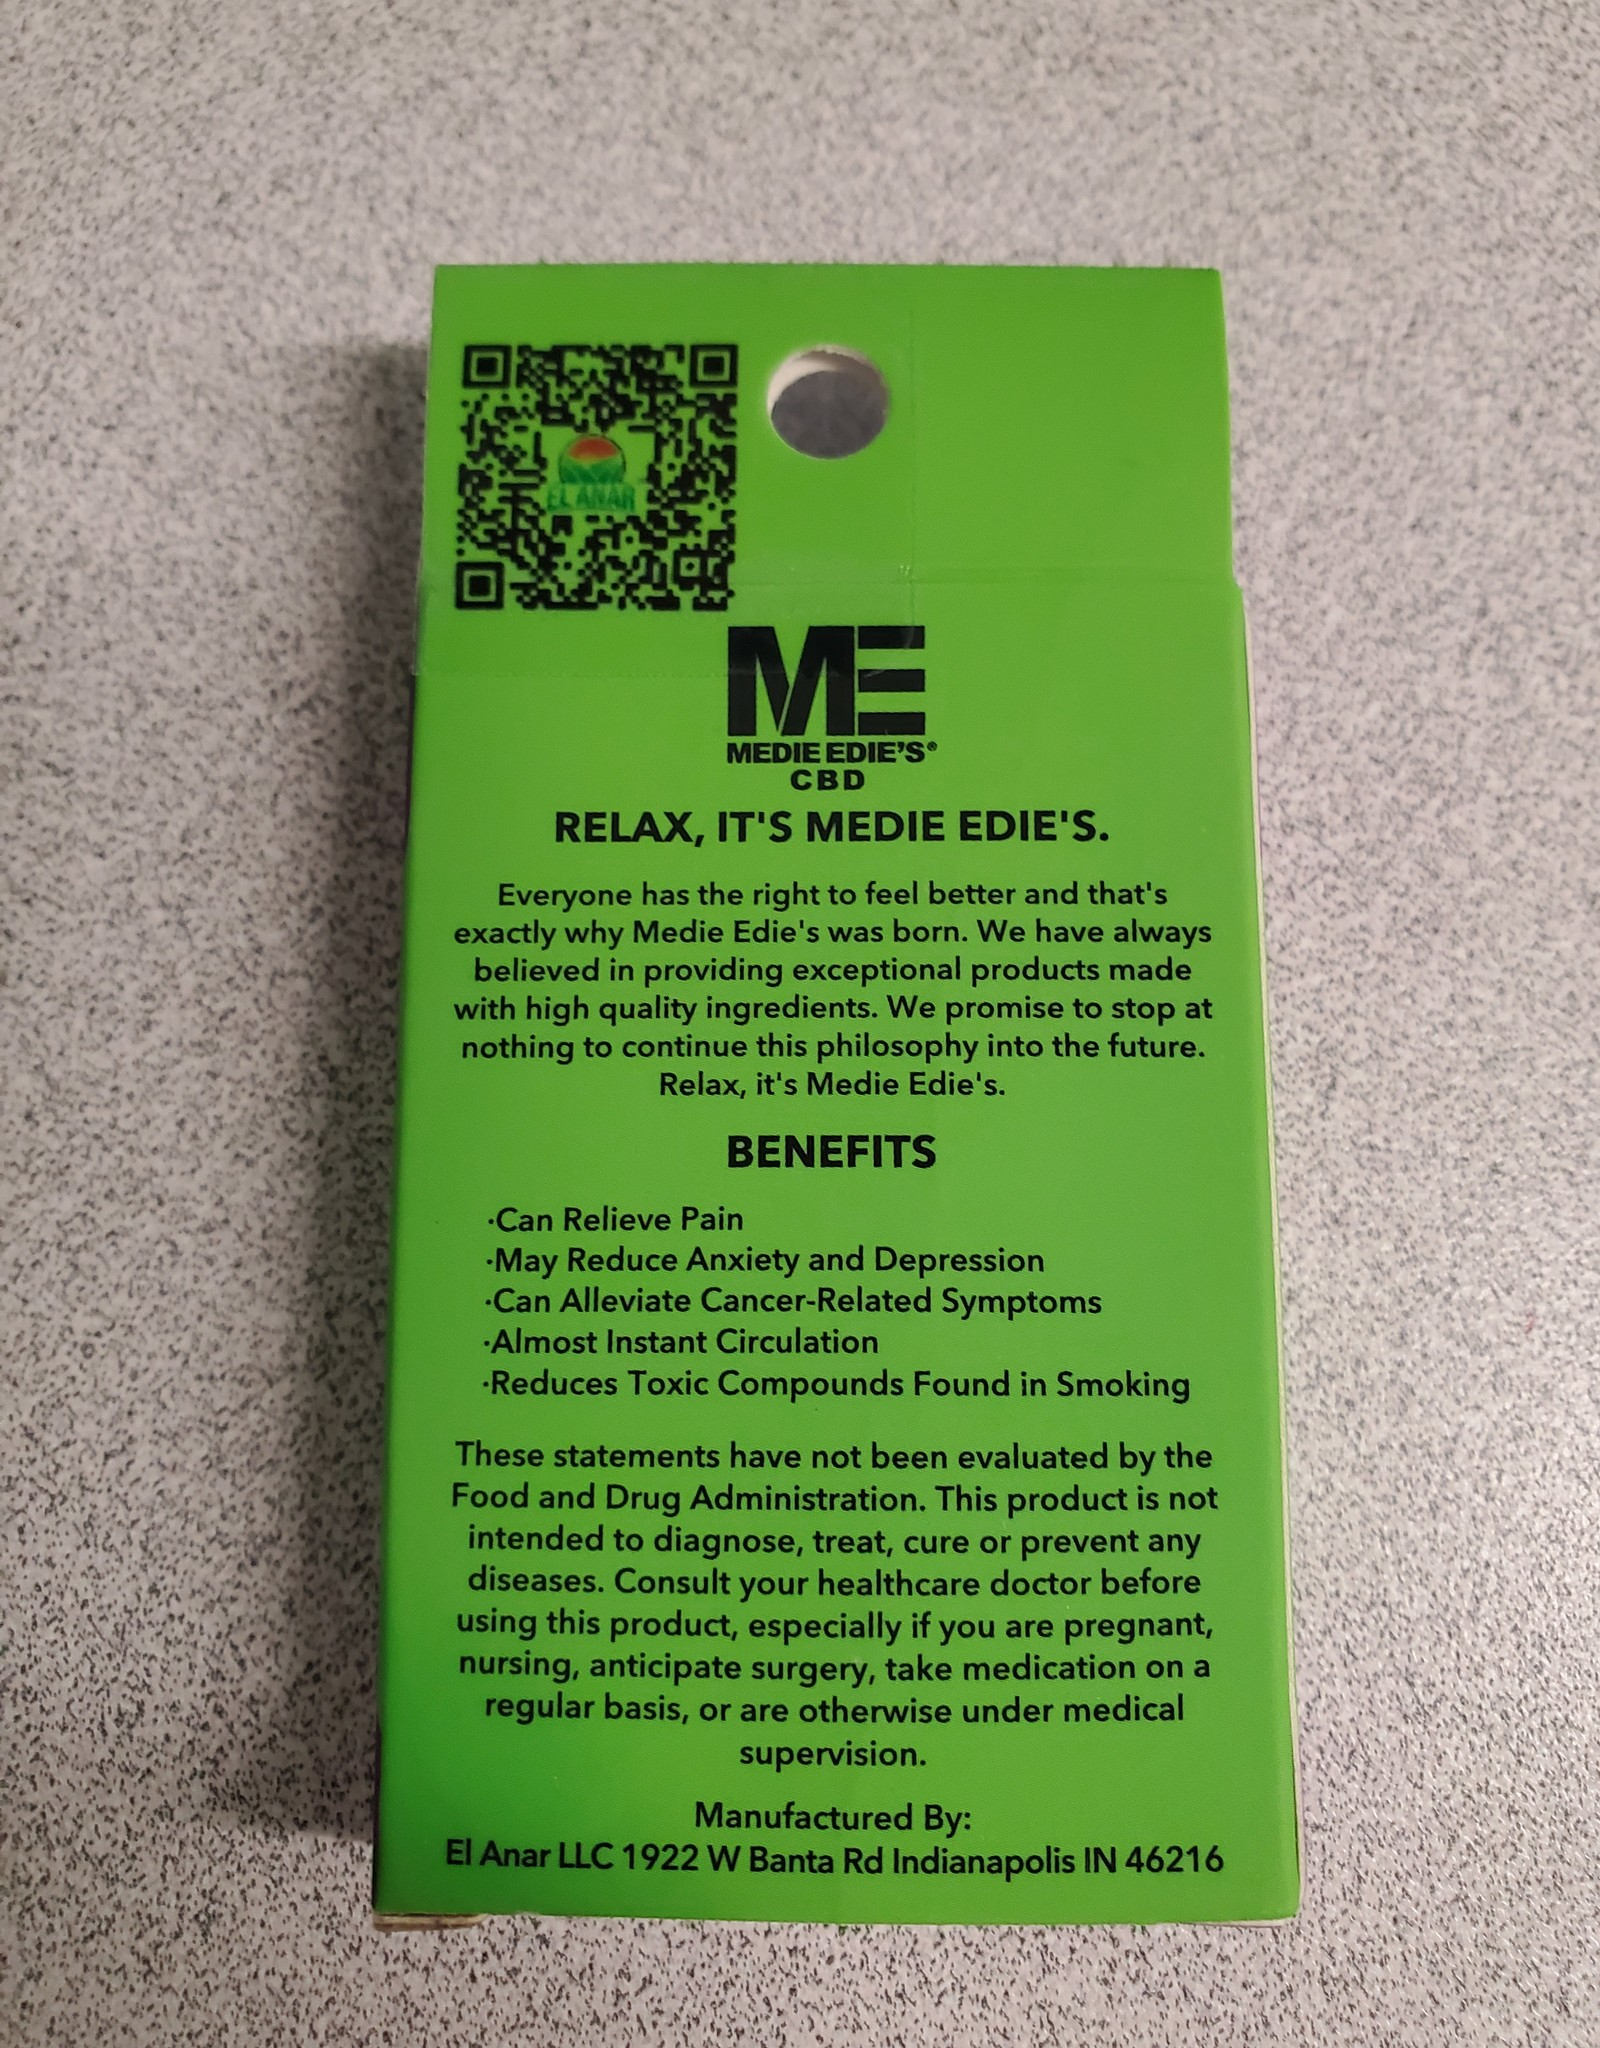 Medie Edie's Do-Si-Dos CBD Vape Cartridge - 225mg - 1ml